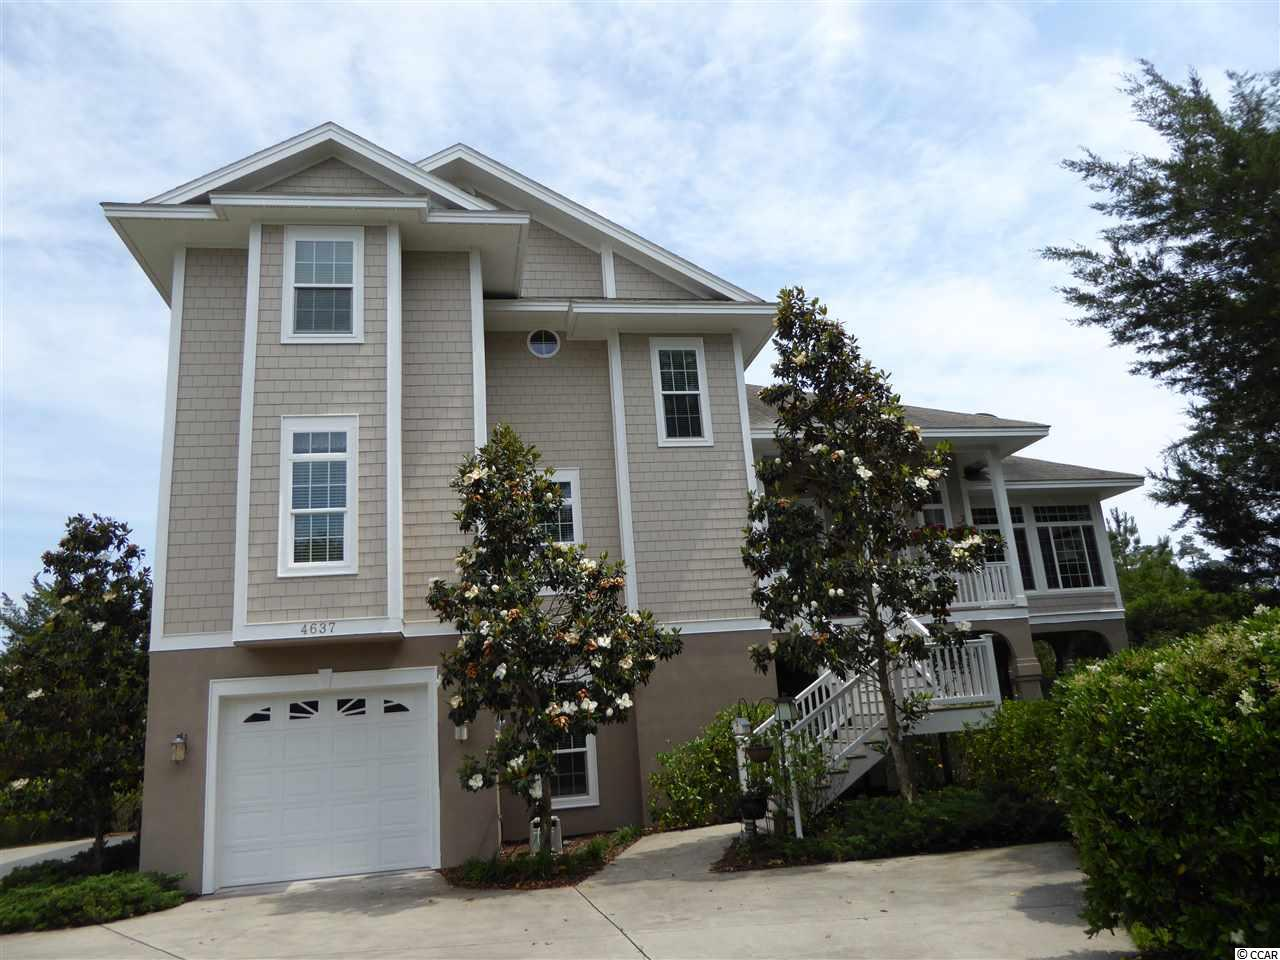 4637 S Island Dr, North Myrtle Beach, SC